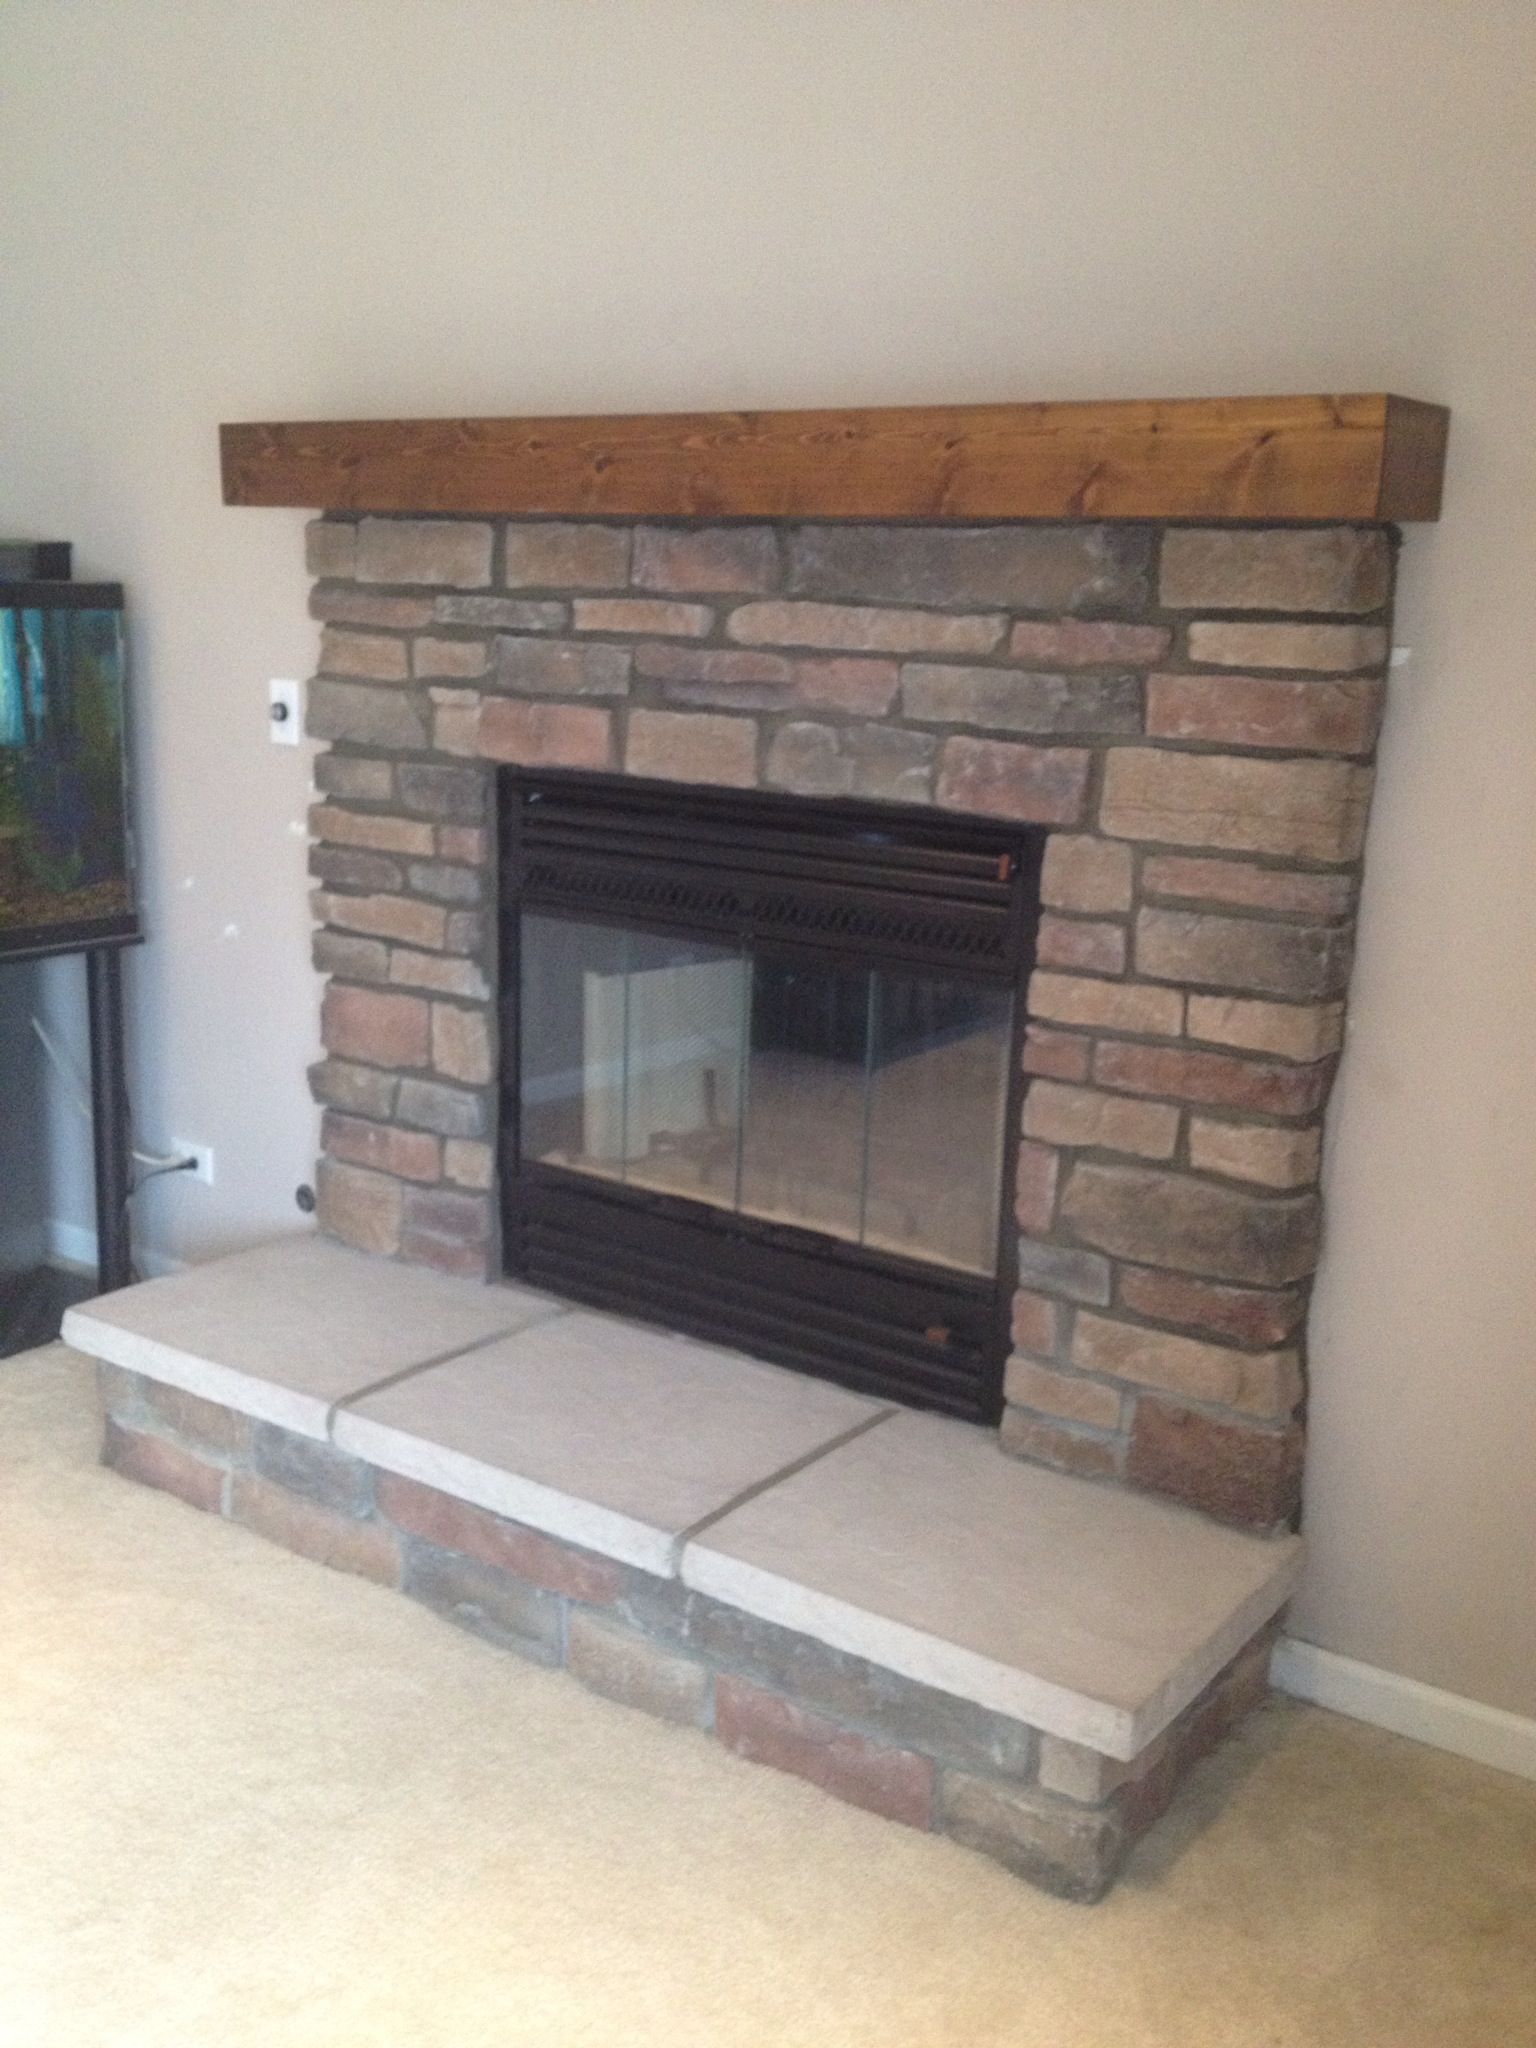 SC60 w/ Stone Work and Mantel